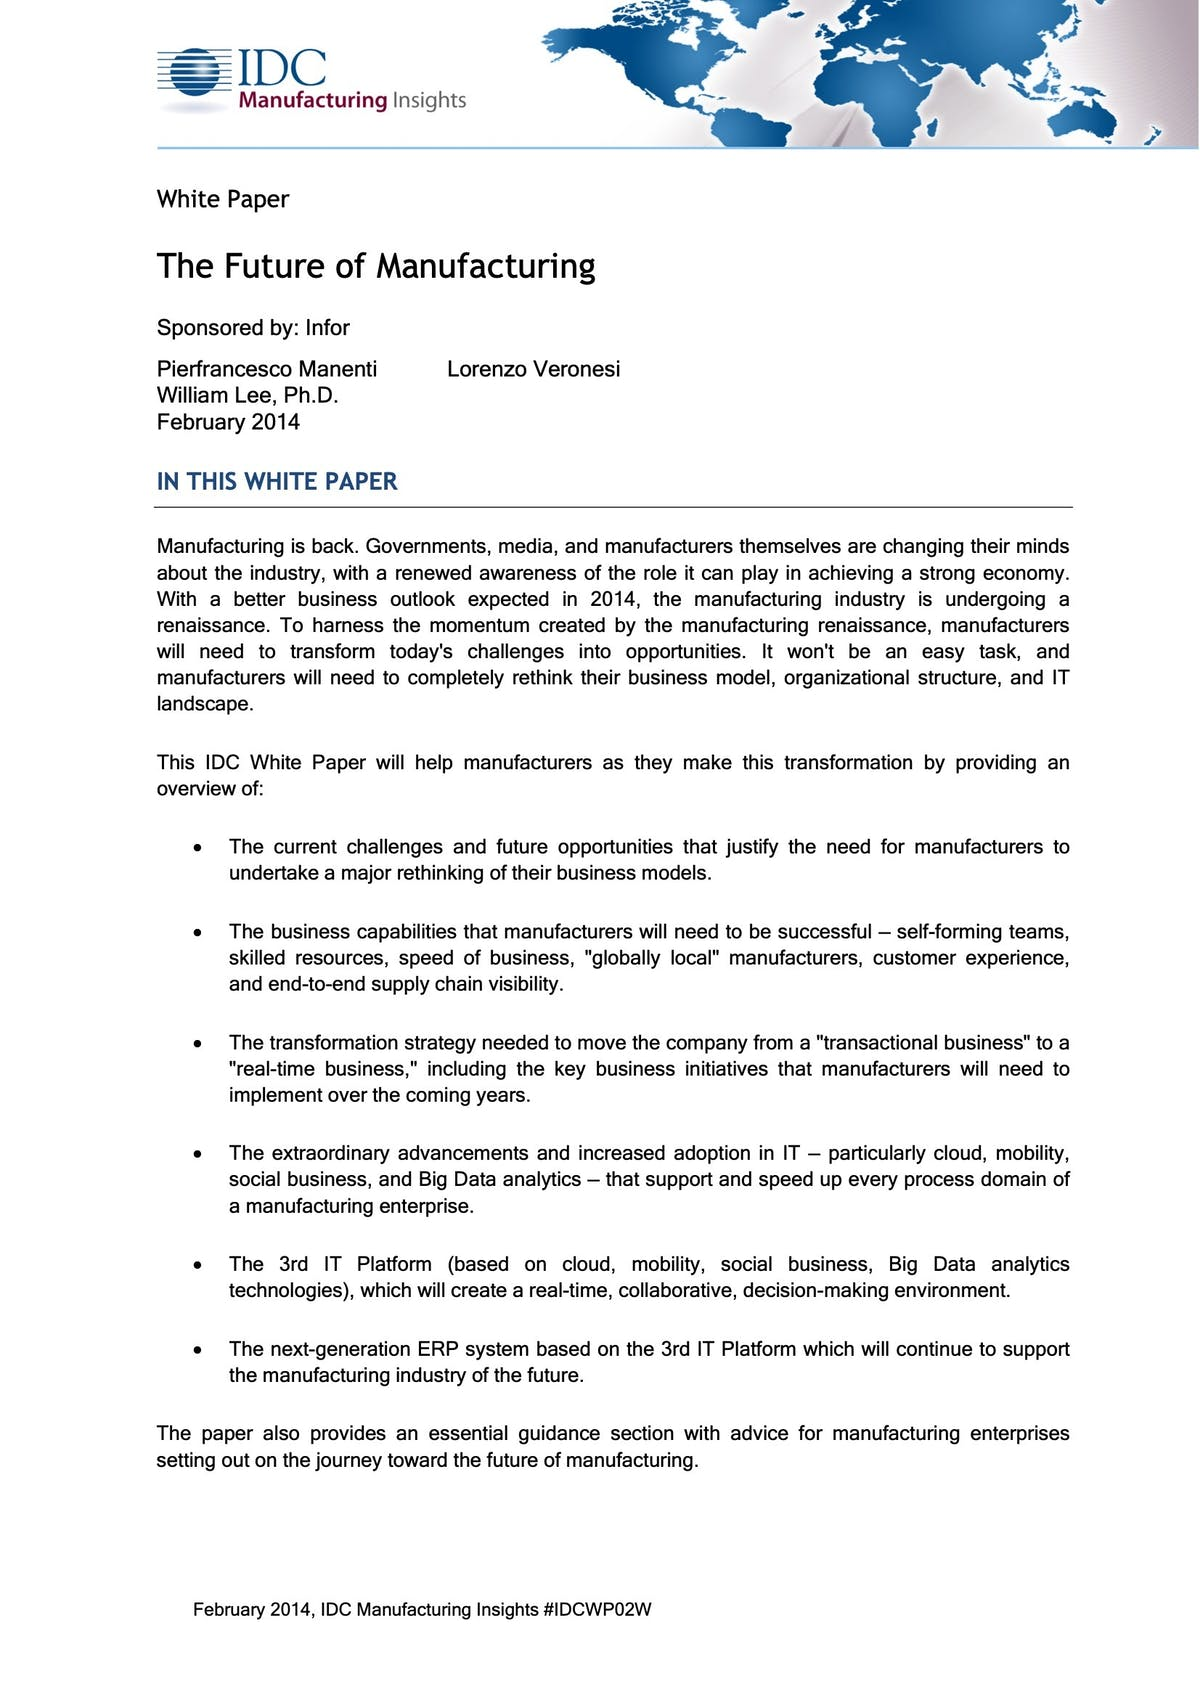 Infor CloudSuite Industrial (Syteline) White Paper - The Future of Manufacturing